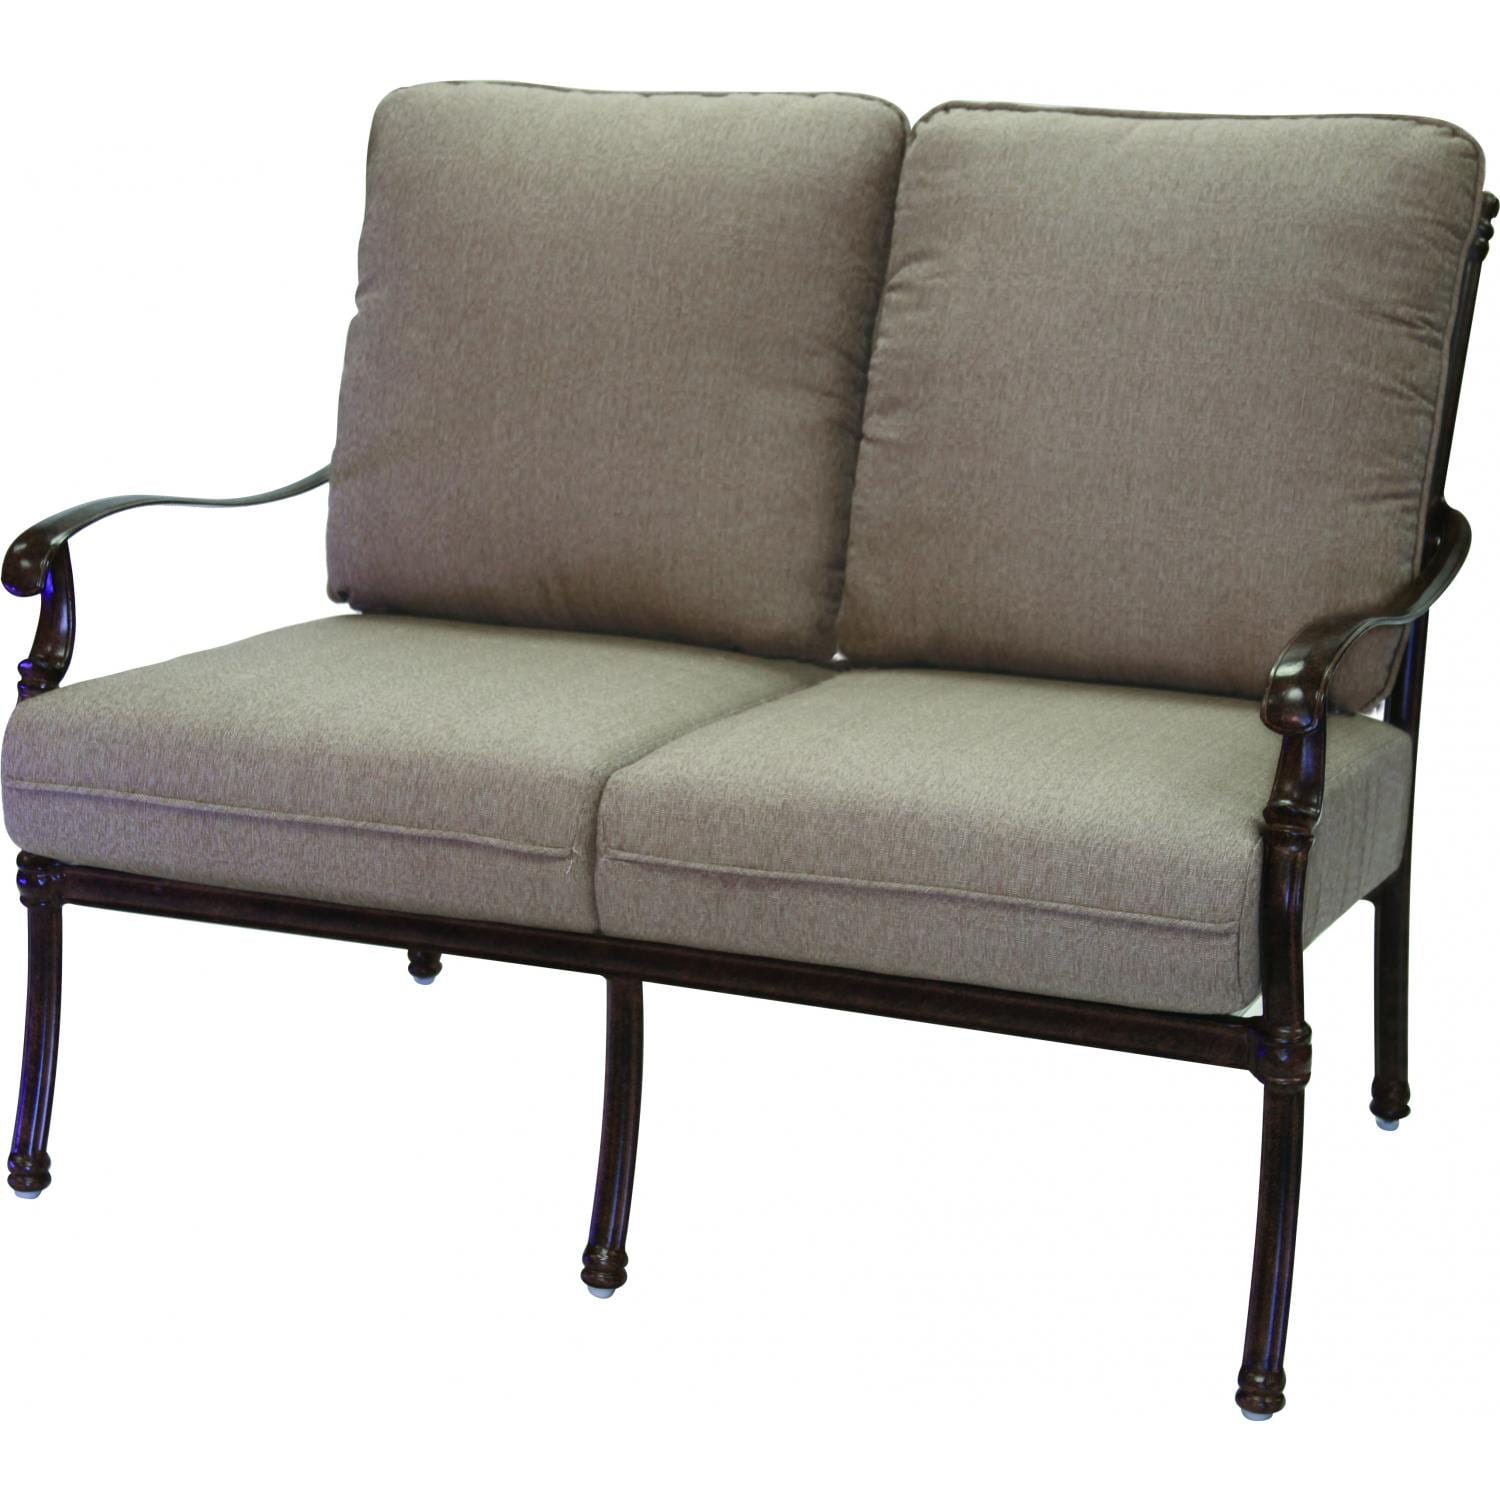 Darlee Florence Cast Aluminum Patio Loveseat